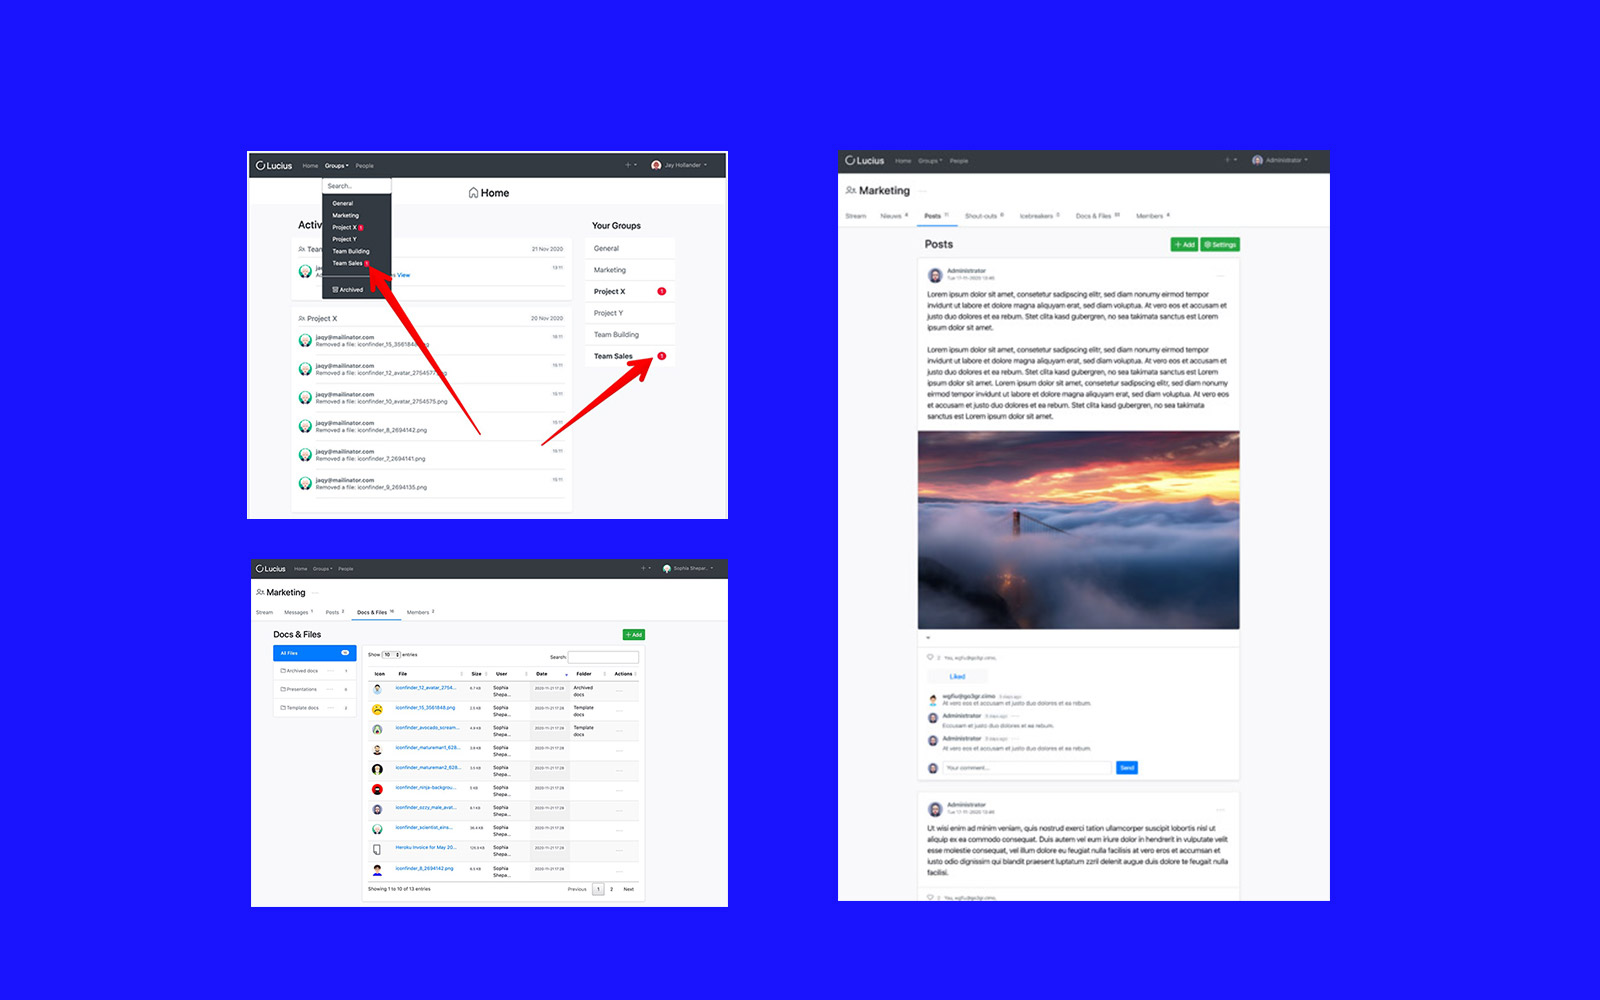 Update OpenLucius | Major facelift for this social productivity Drupal distro